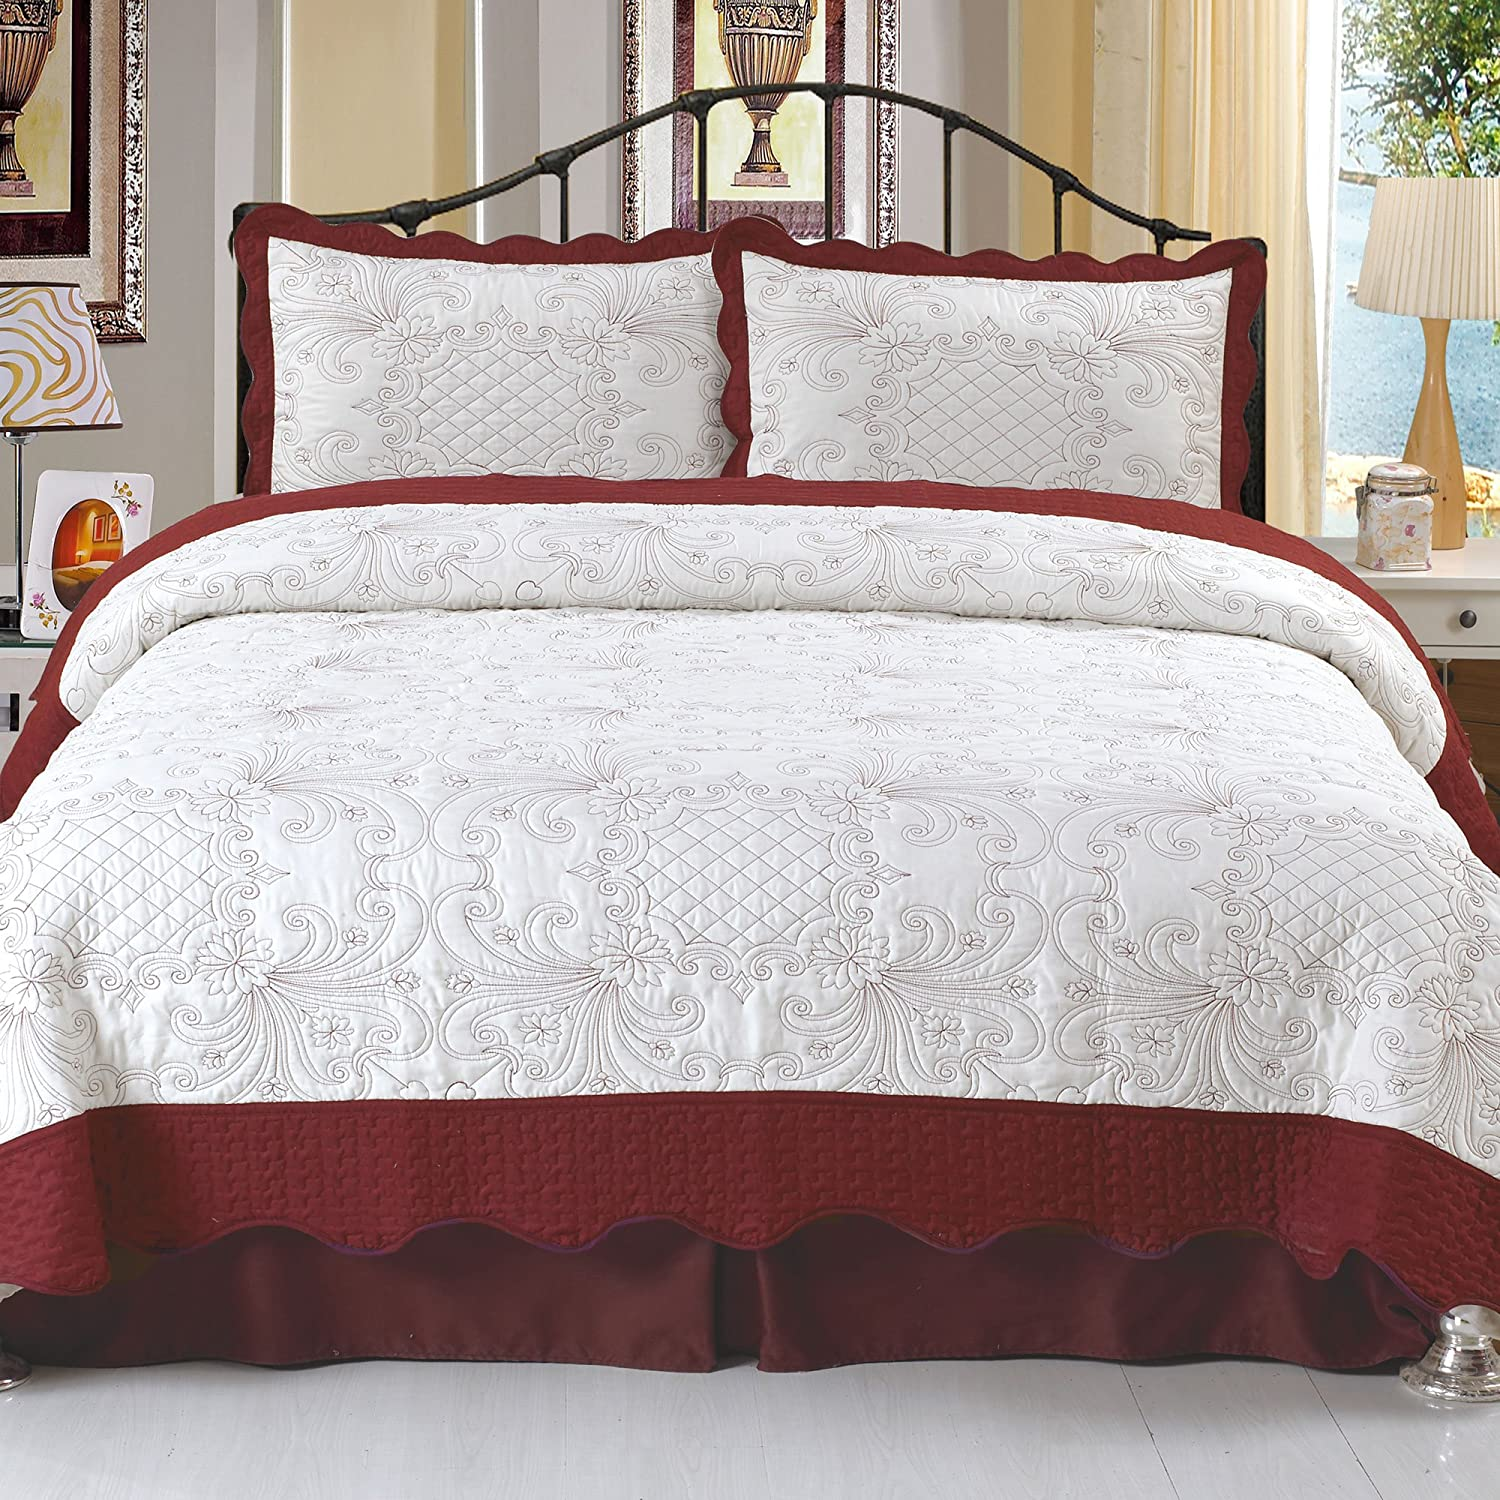 Lavish Home Juliette Embroidered 3-Piece Quilt Set, King